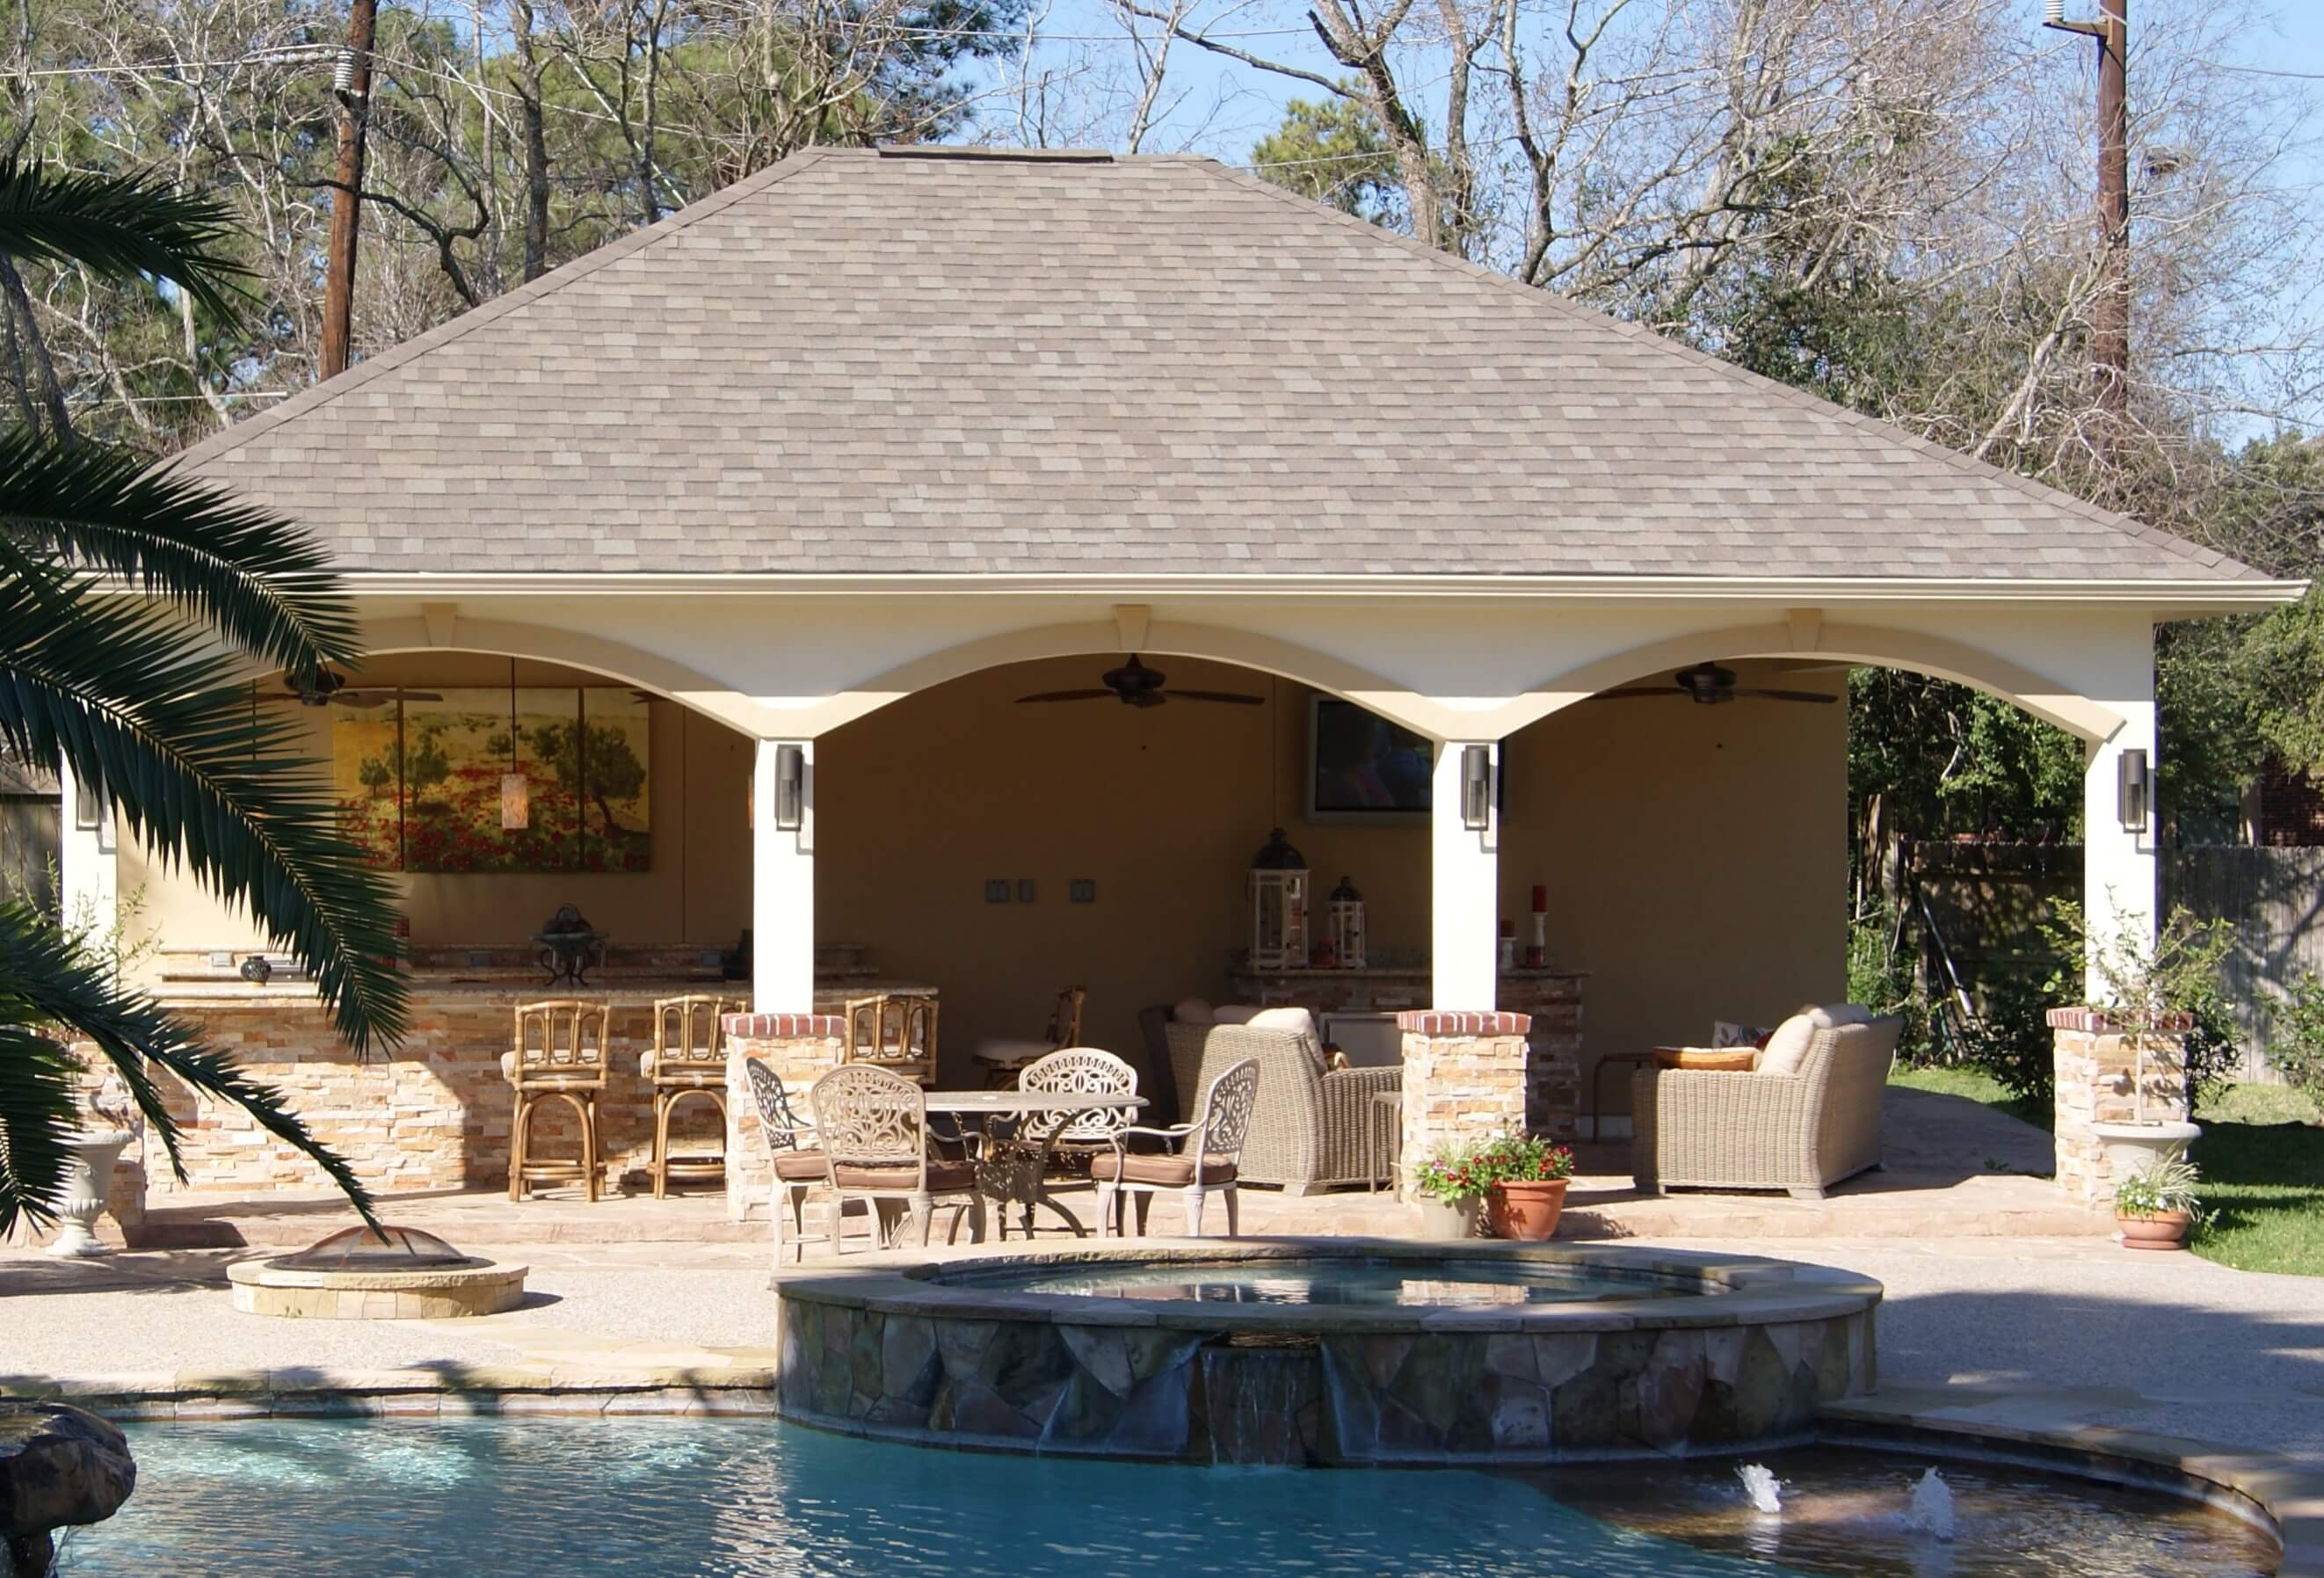 North Houston Pool Cabana - Texas Custom Patios on Cabana Designs Ideas id=29874